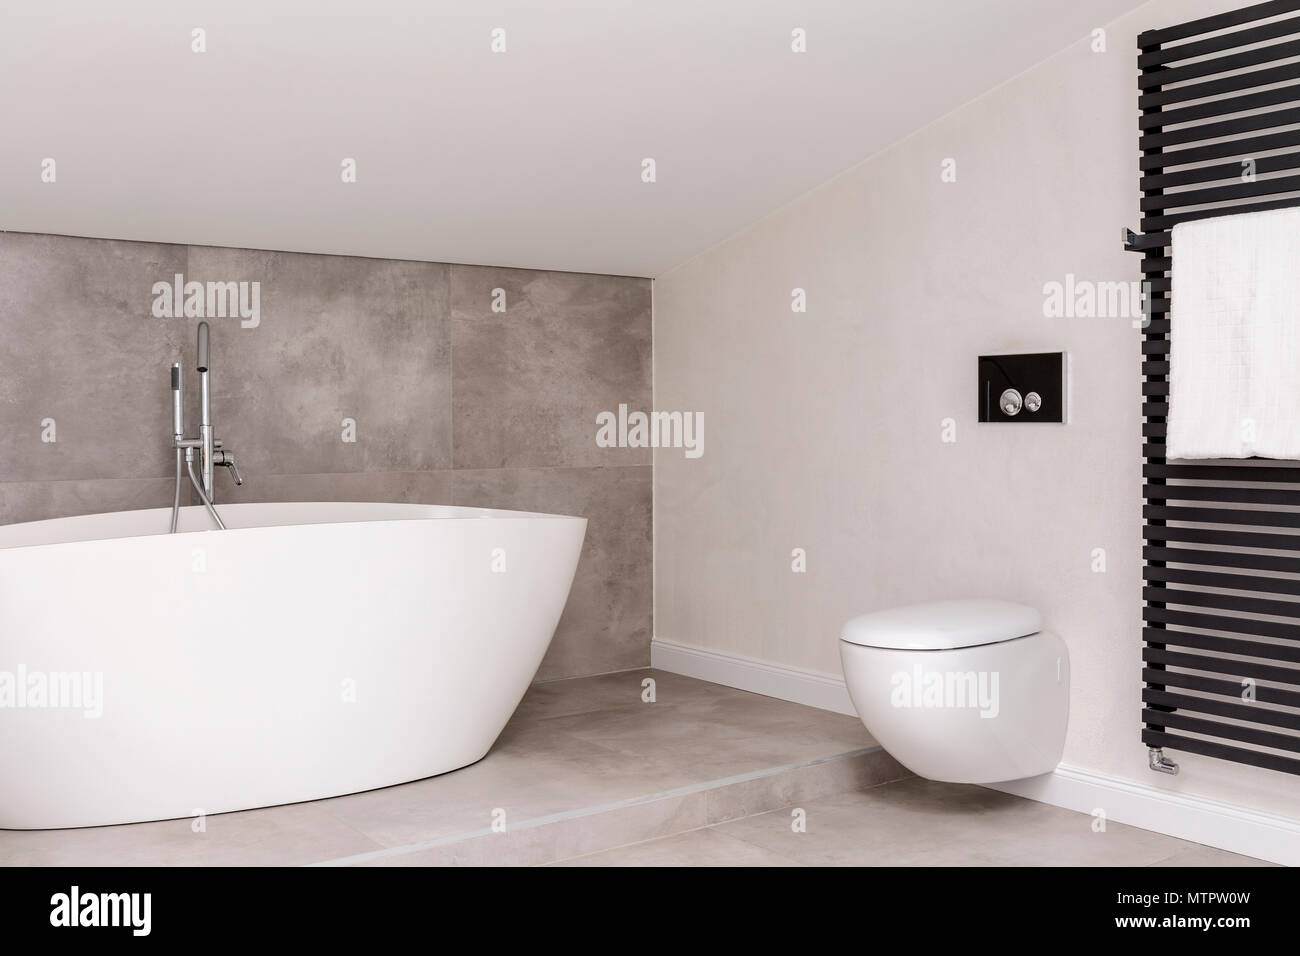 White bathtub against grey glaze in simple bathroom with toilet and ...